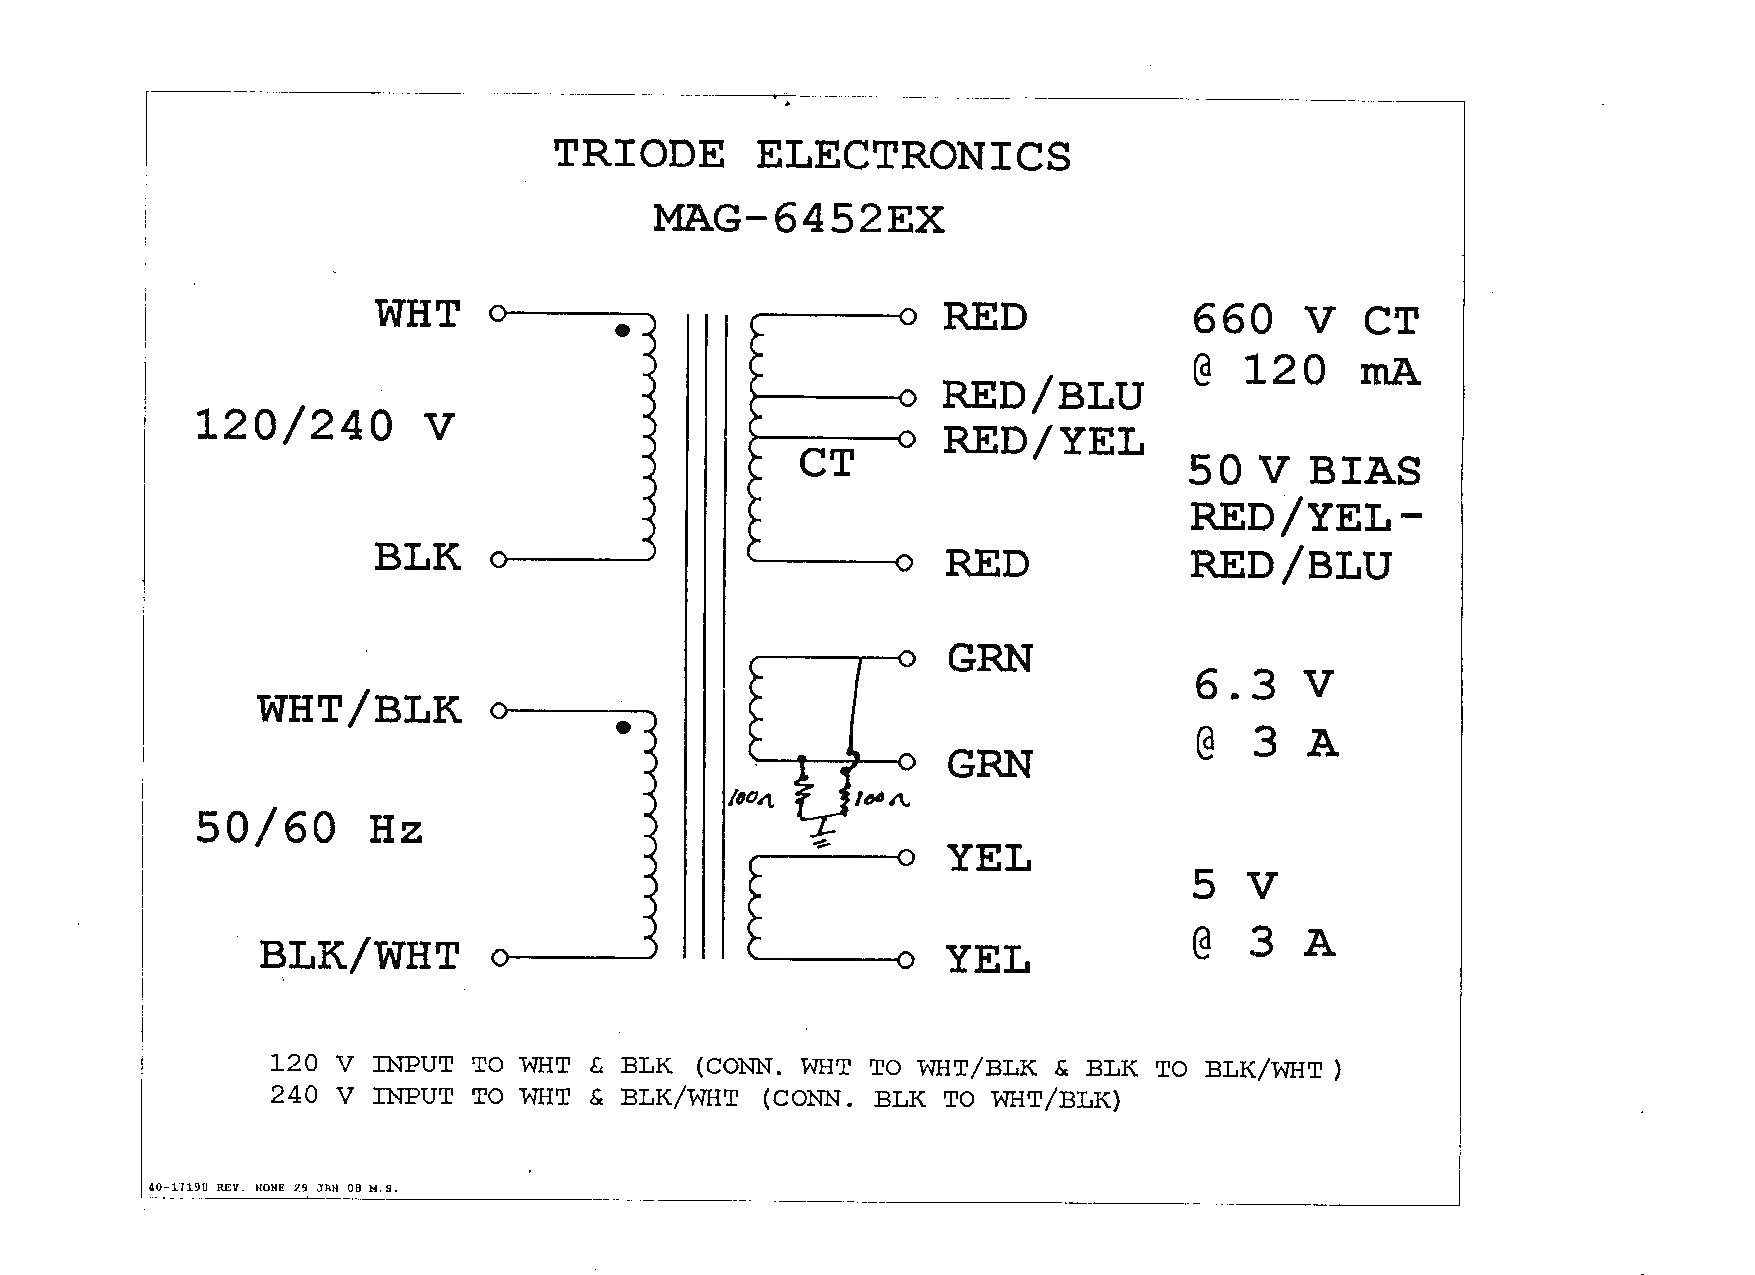 boost transformer wiring diagram Download-3 Phase Buck Boost Transformer Wiring Diagram Buck Boost Transformer Wiring Diagram Free Diagrams Fancy 7-g